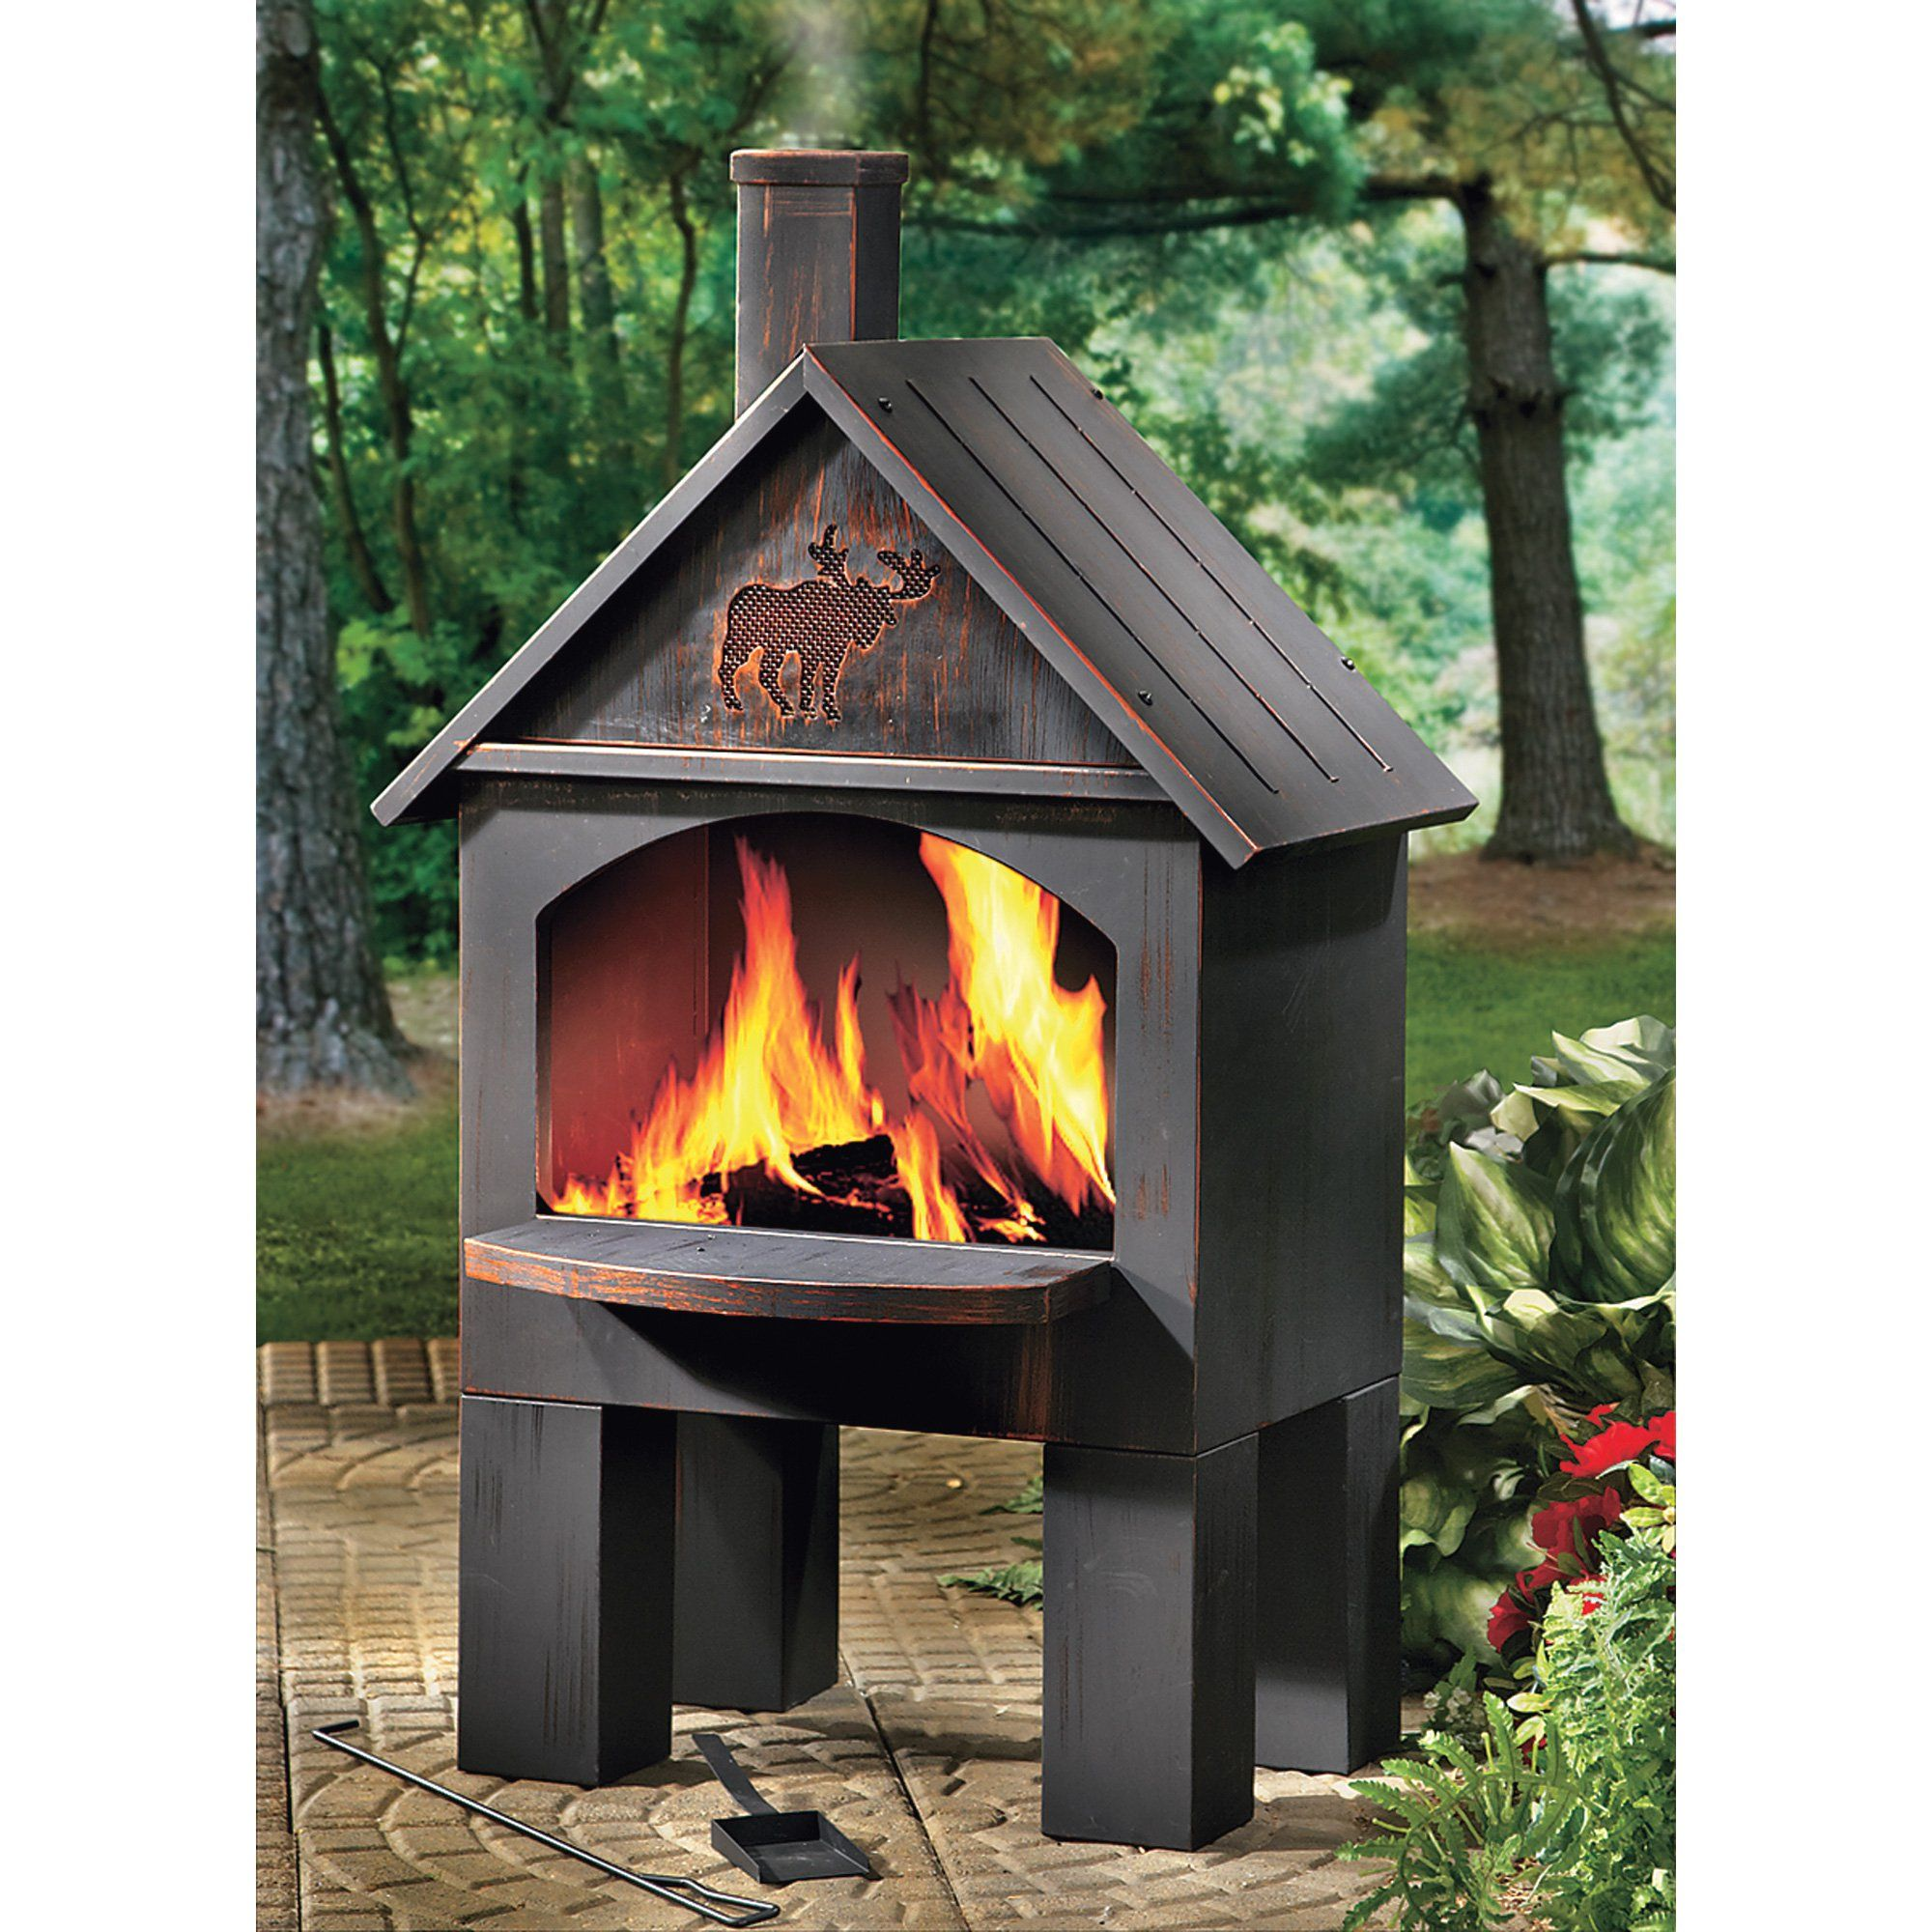 Cabin Style Outdoor Cooking Steel Chiminea Www Kotulas Com Free Shipping Fire Pit Patio Fire Pit Backyard Outdoor Fireplace Kits